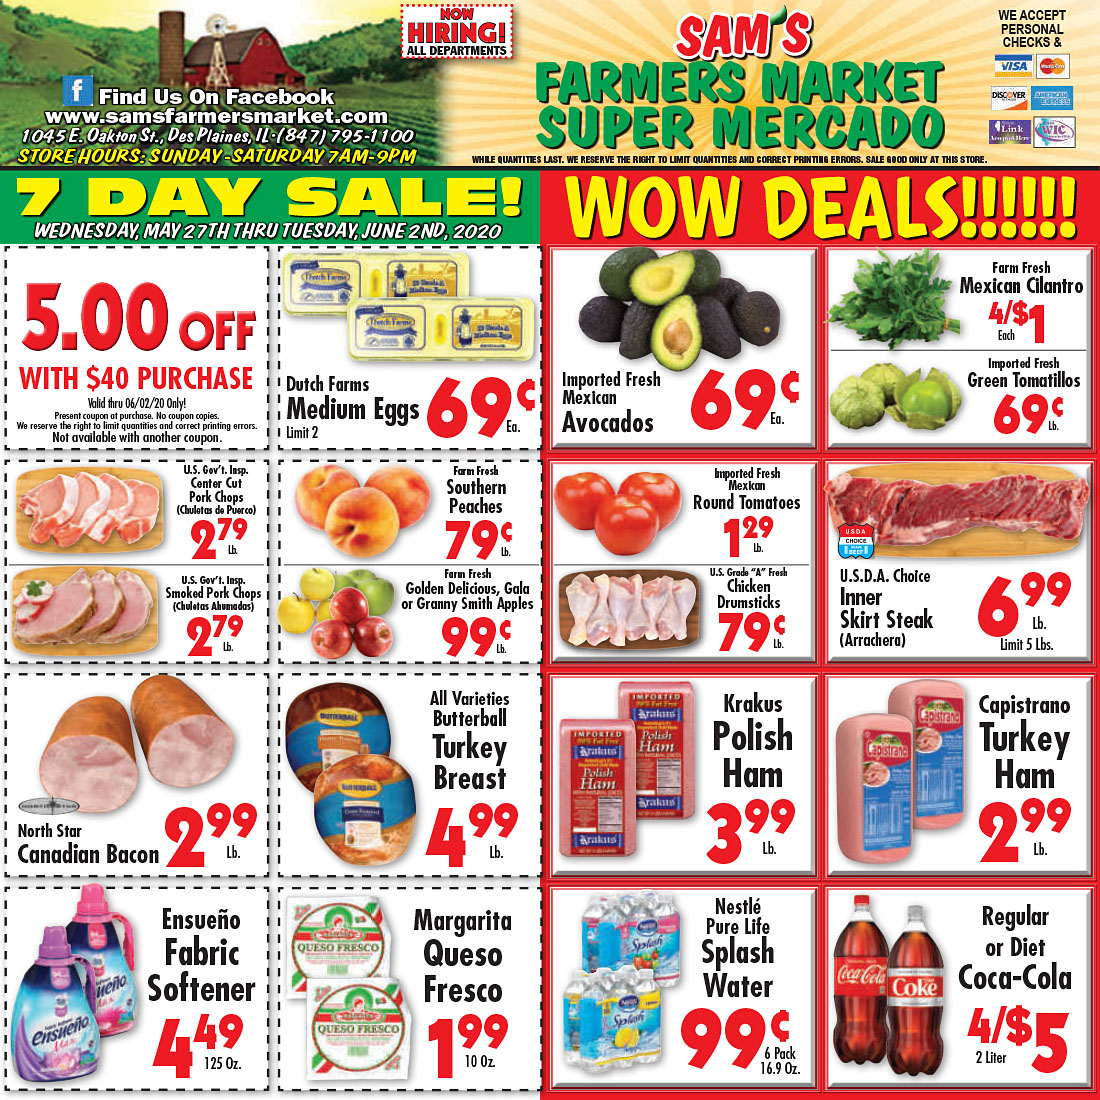 Sam's Farmers Market - Weekly Ad - Des Plaines, IL